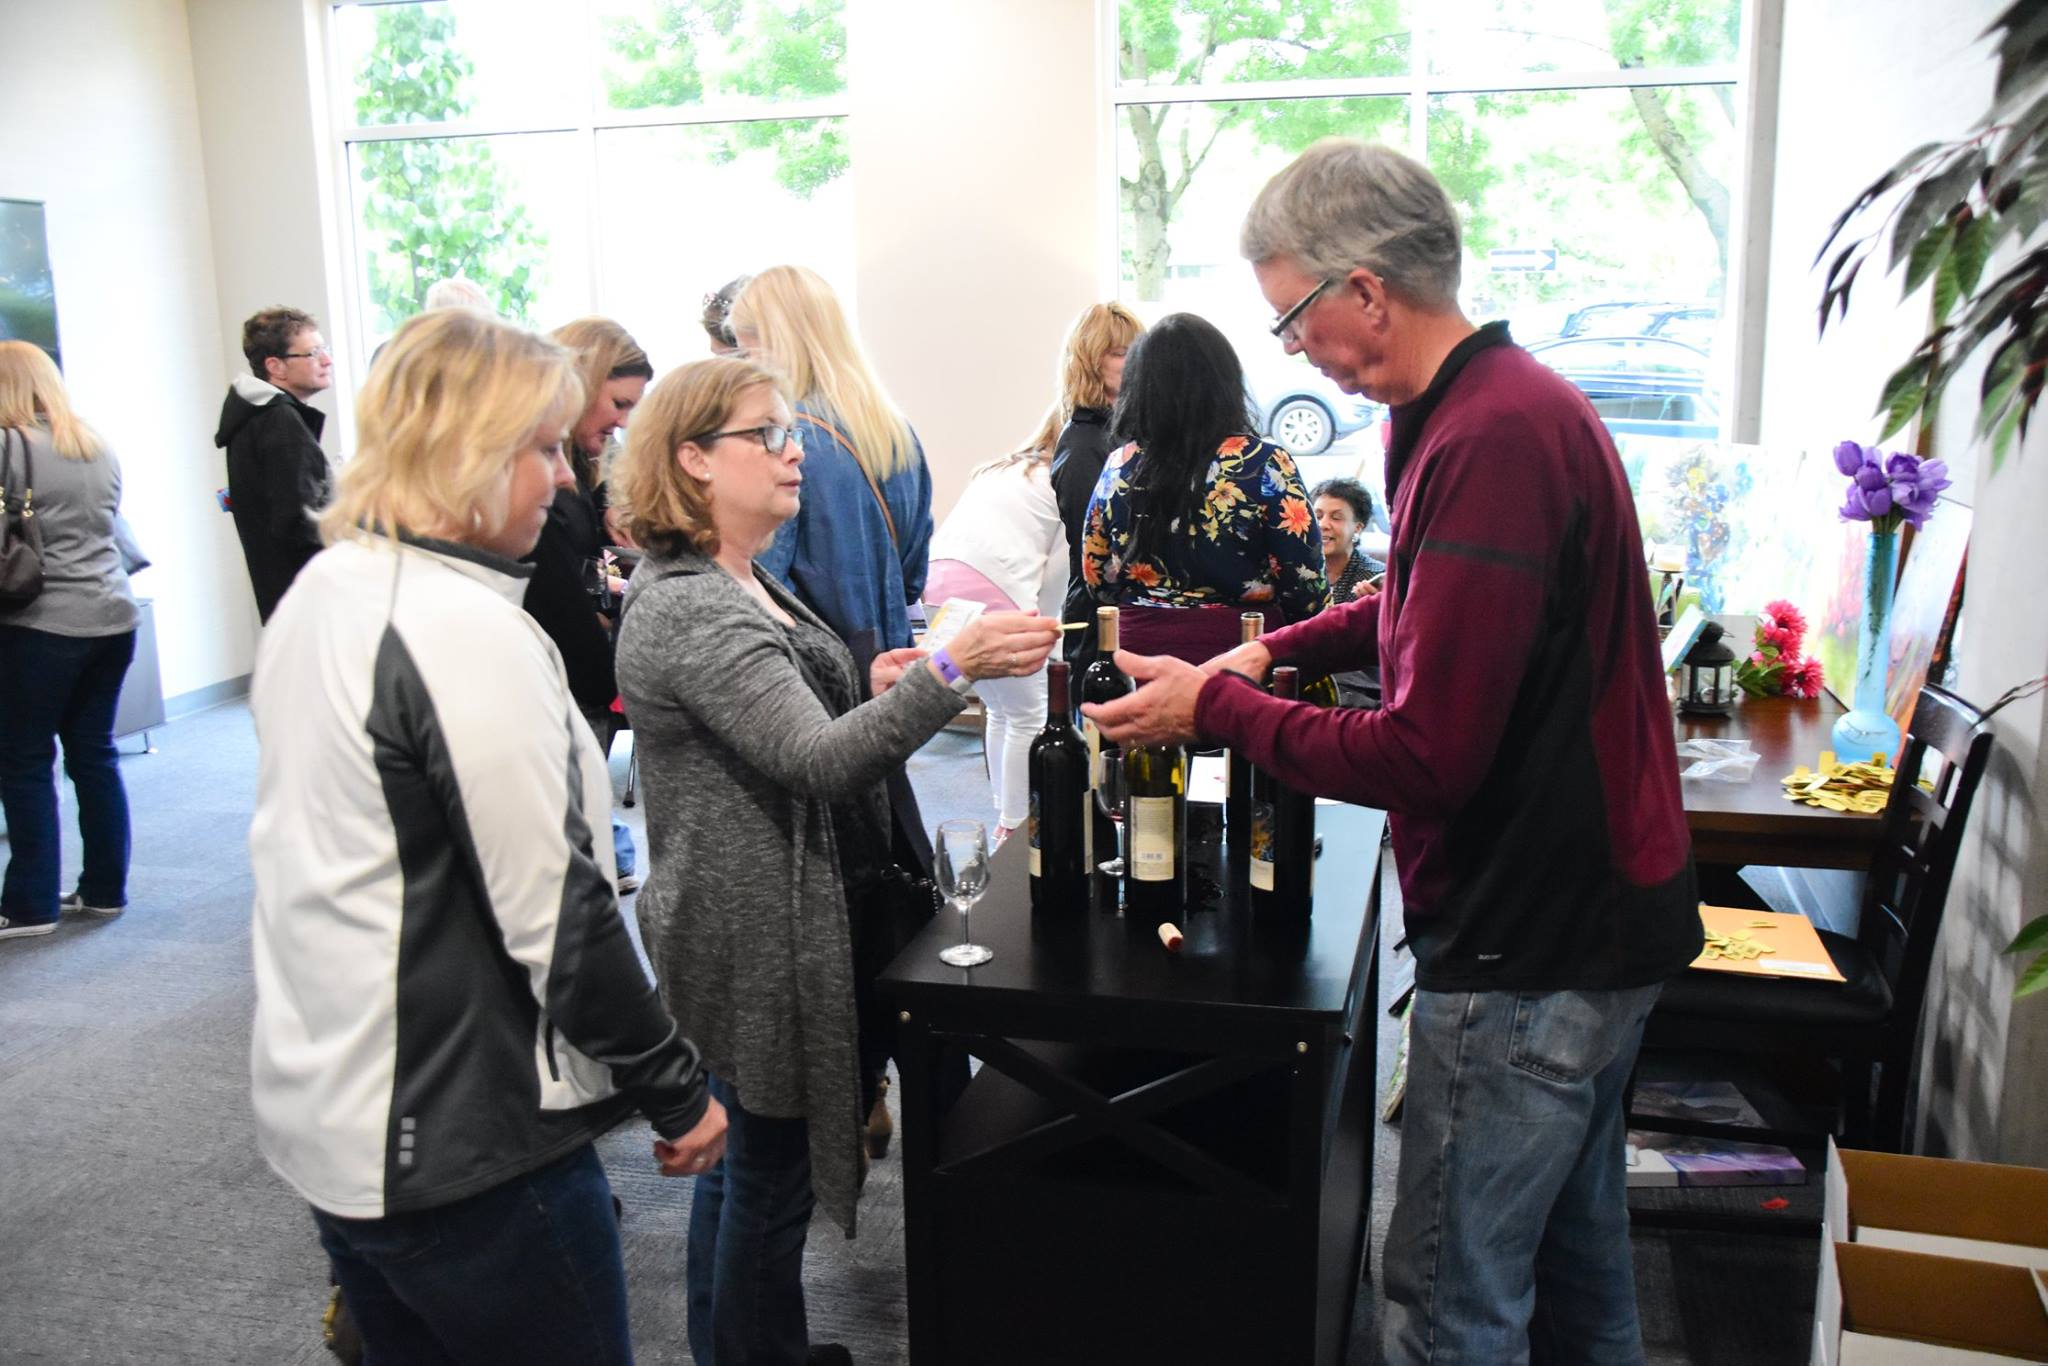 Don't miss the Renton Wine Walk on Friday, June 7, 2019, from 6 p.m. to 9 p.m. Tickets for the Renton Wine Walk are $25 in advance and $30 at the event (if not sold out). (Photo courtesy of Renton Downtown Partnership)